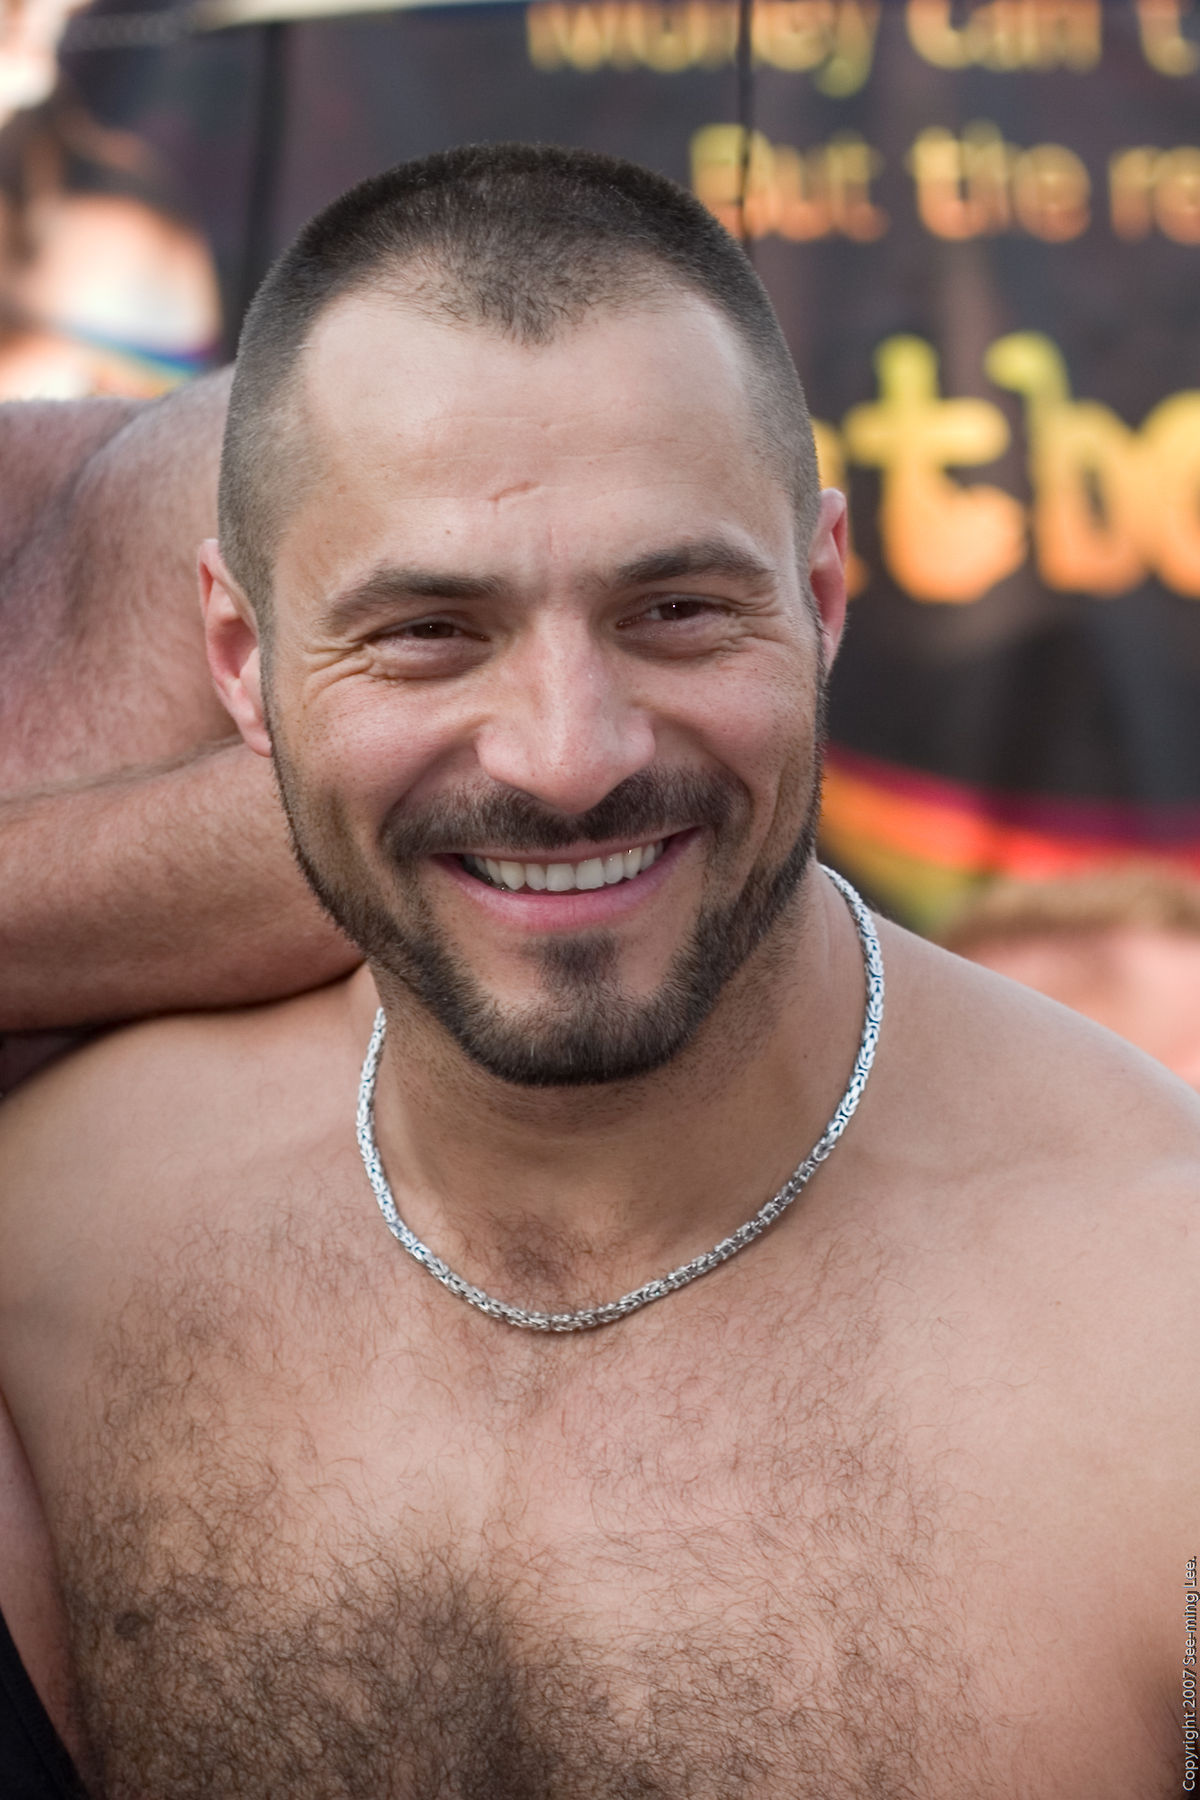 Actor Porno Gay Portugues arpad miklos - wikipedia